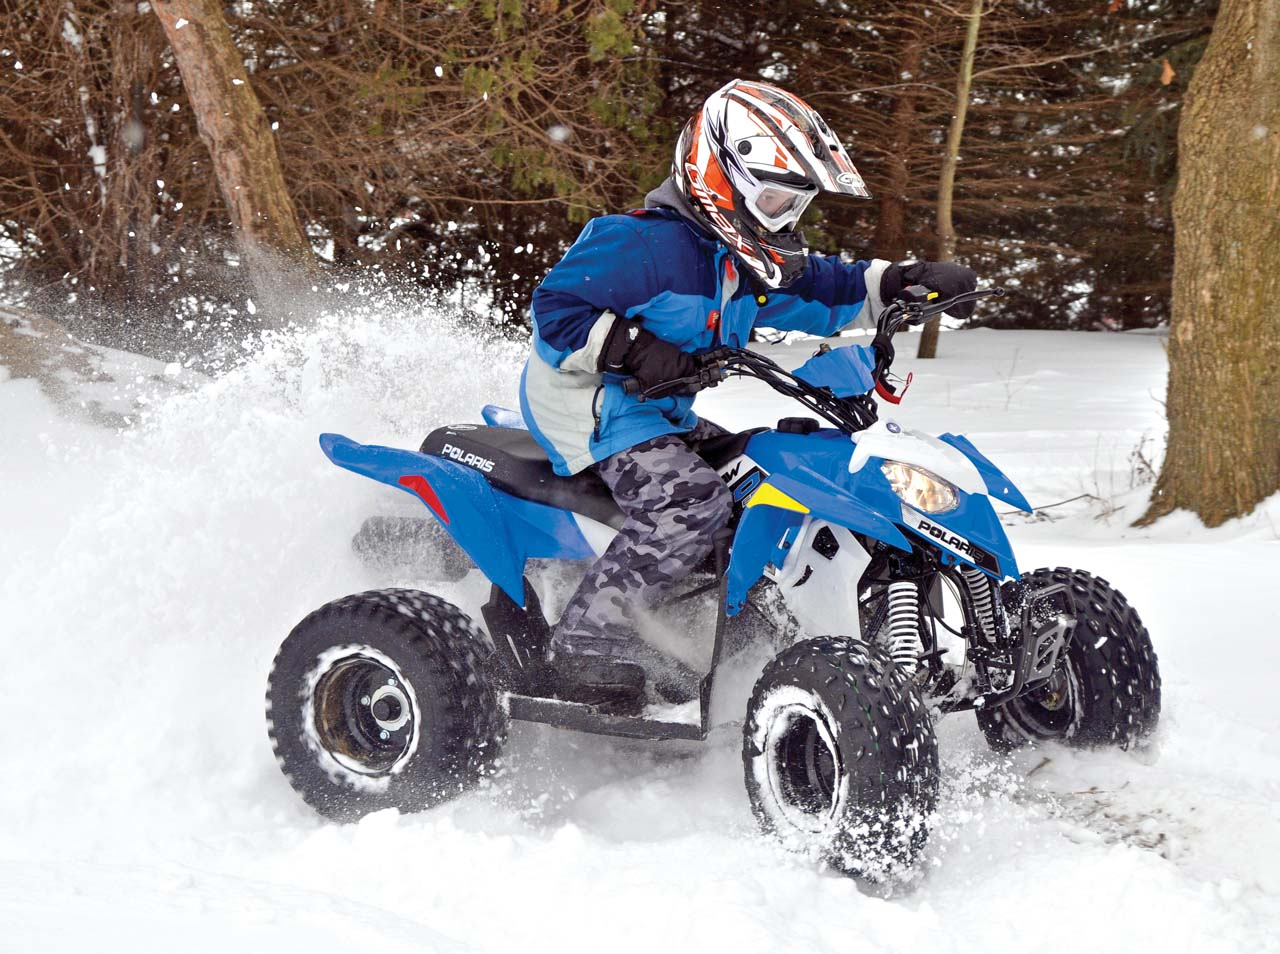 hight resolution of 2017 polaris outlaw110 front right blue riding in